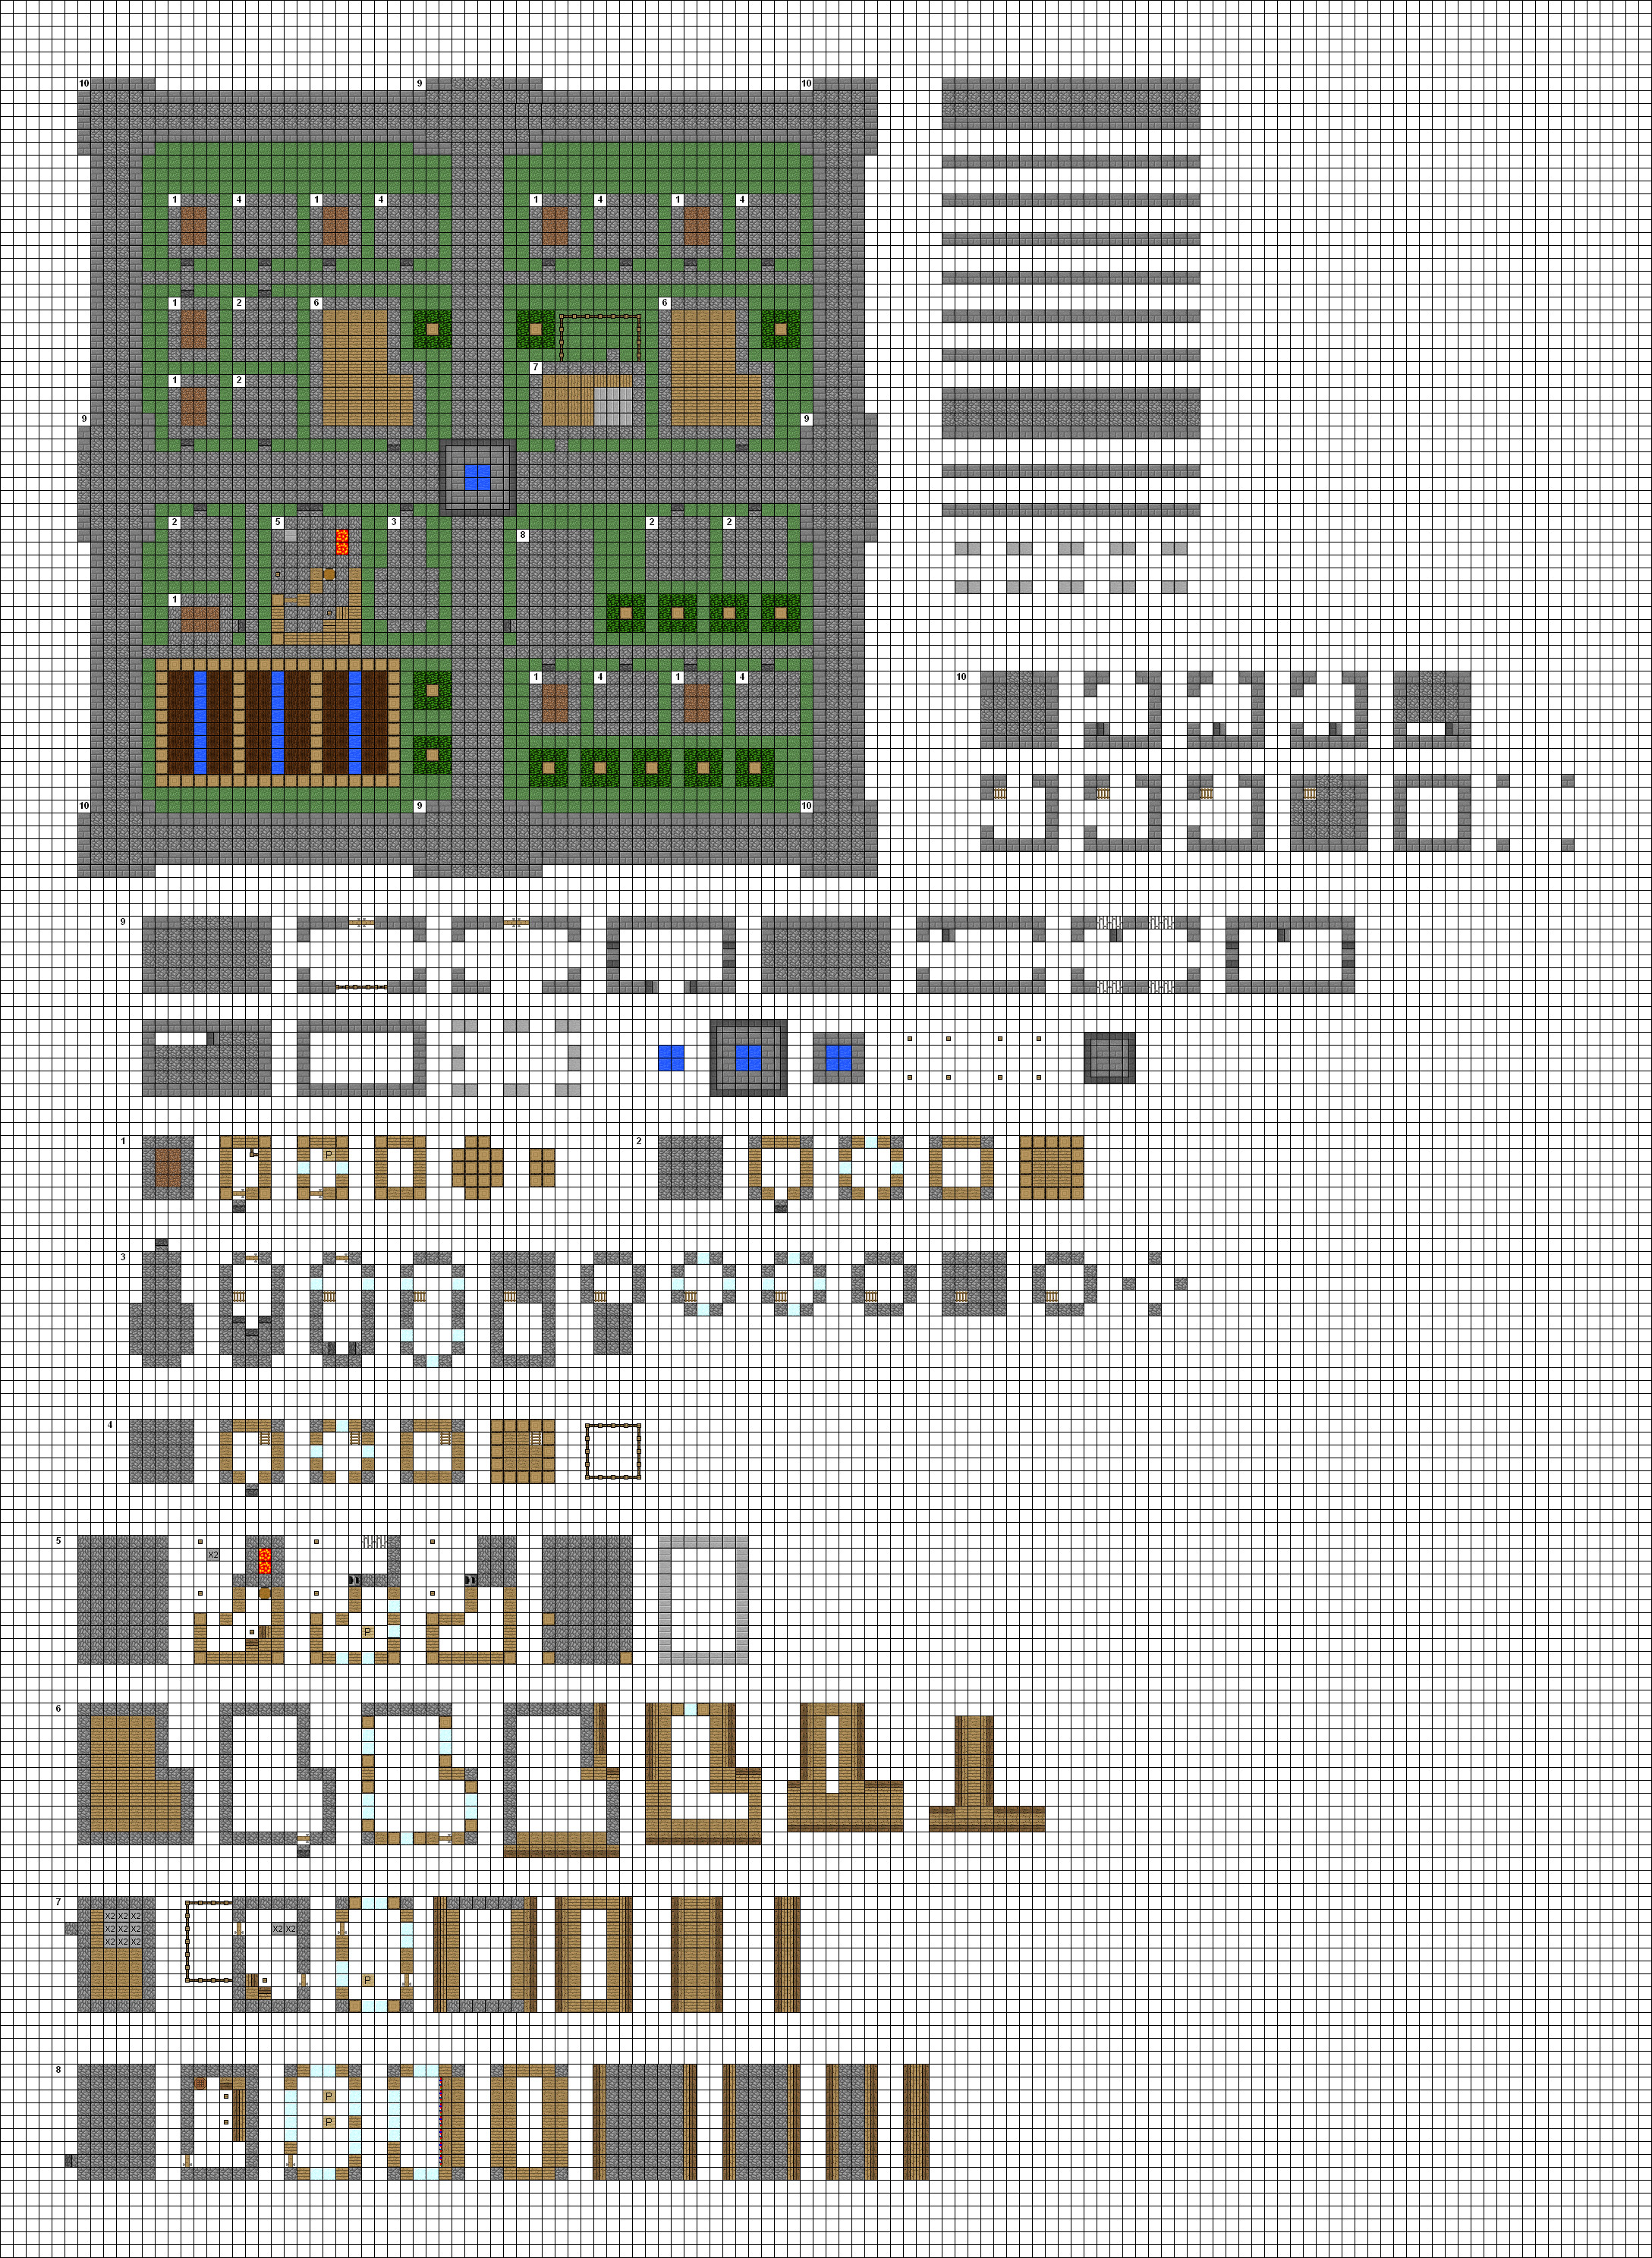 small fortified village WIP by ColtCoyote on DeviantArt